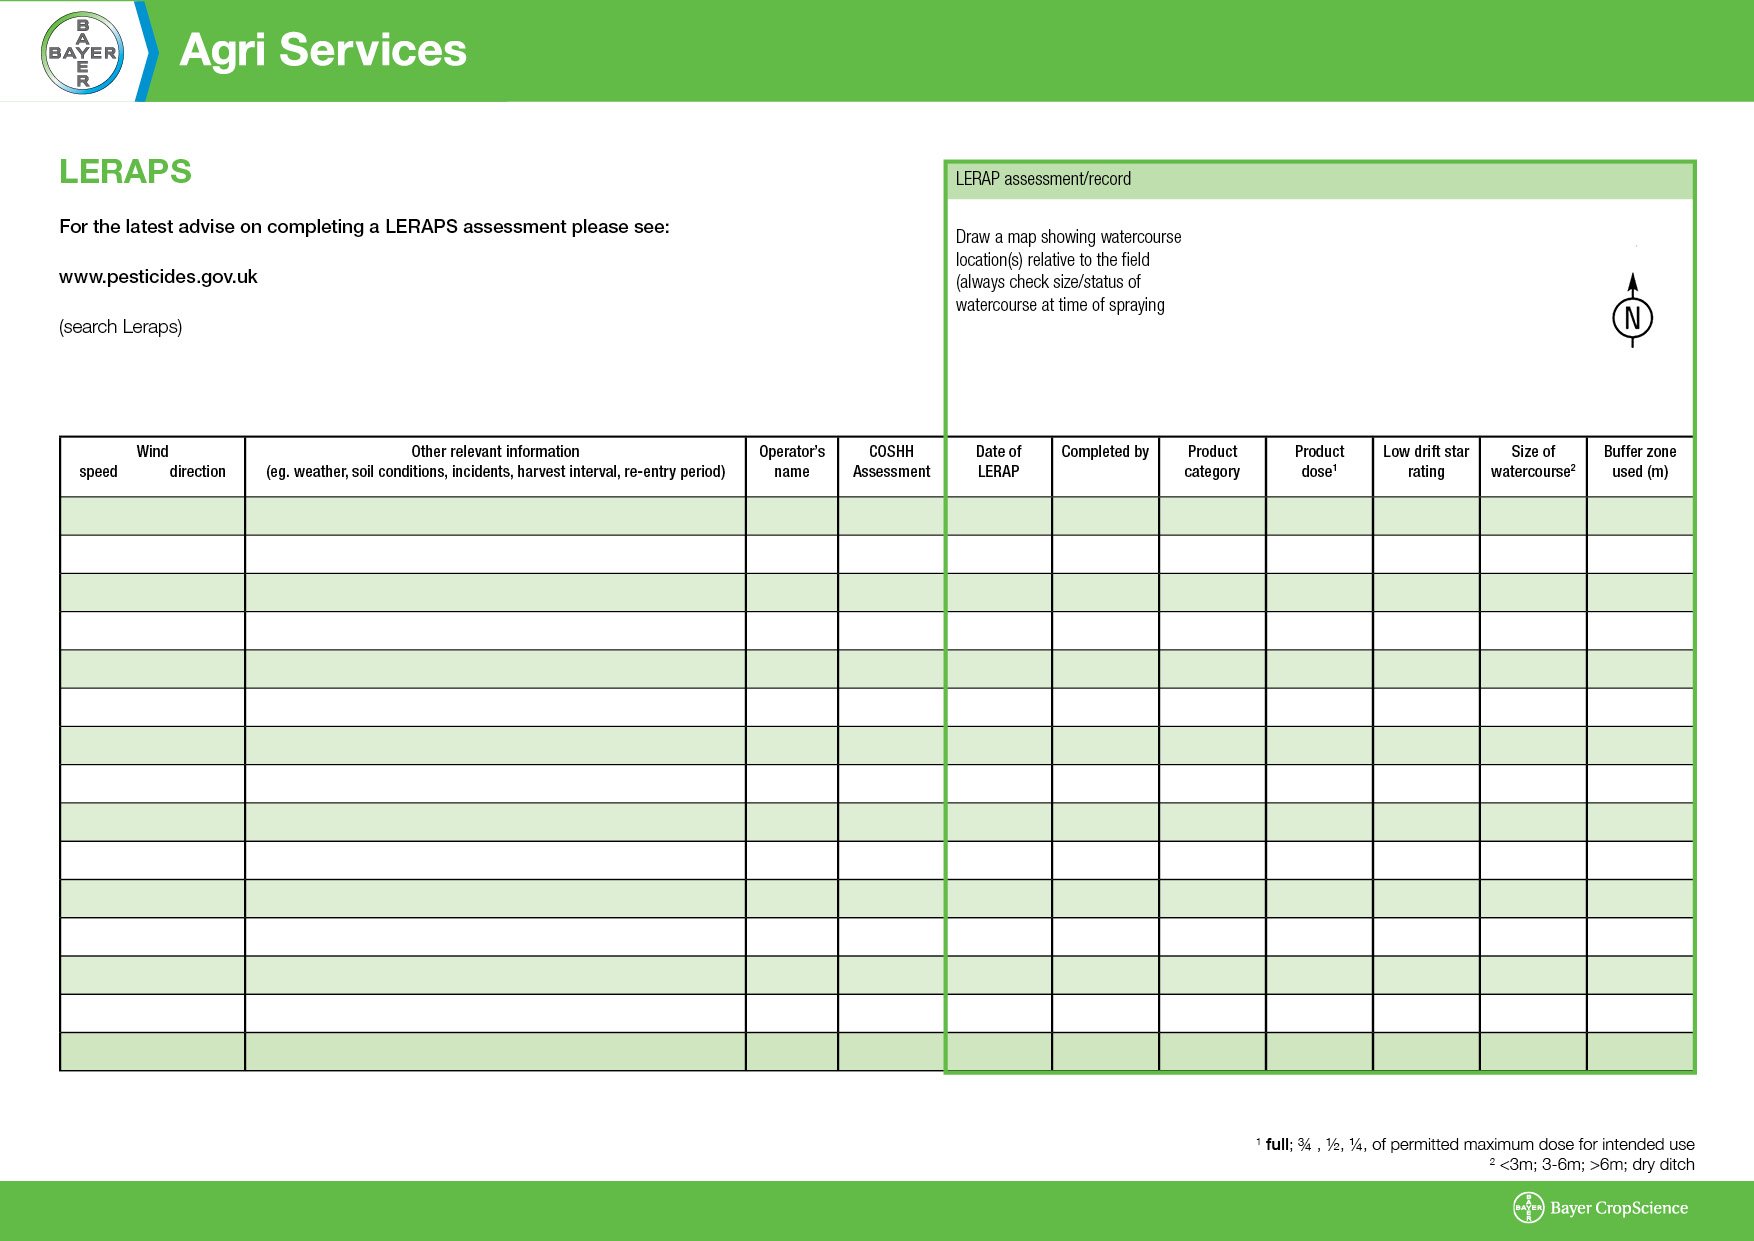 Superior Service Application Form Templates to Download